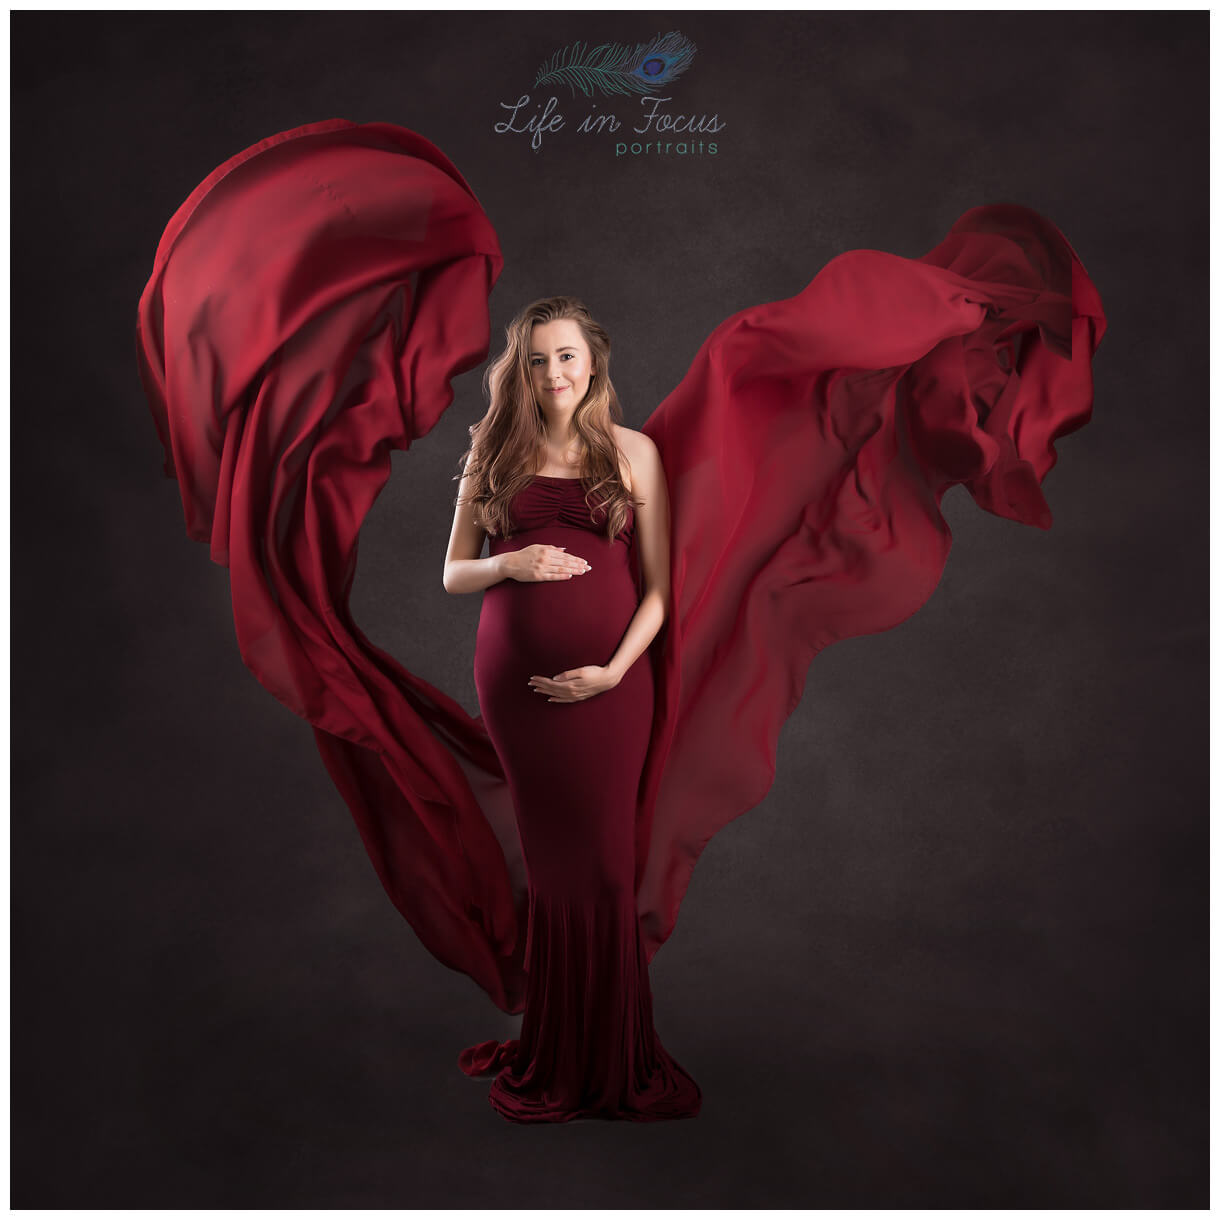 artistic pregnancy photography with flowing red dress Life in Focus Portraits maternity photoshoot Rhu Helensburgh Cove